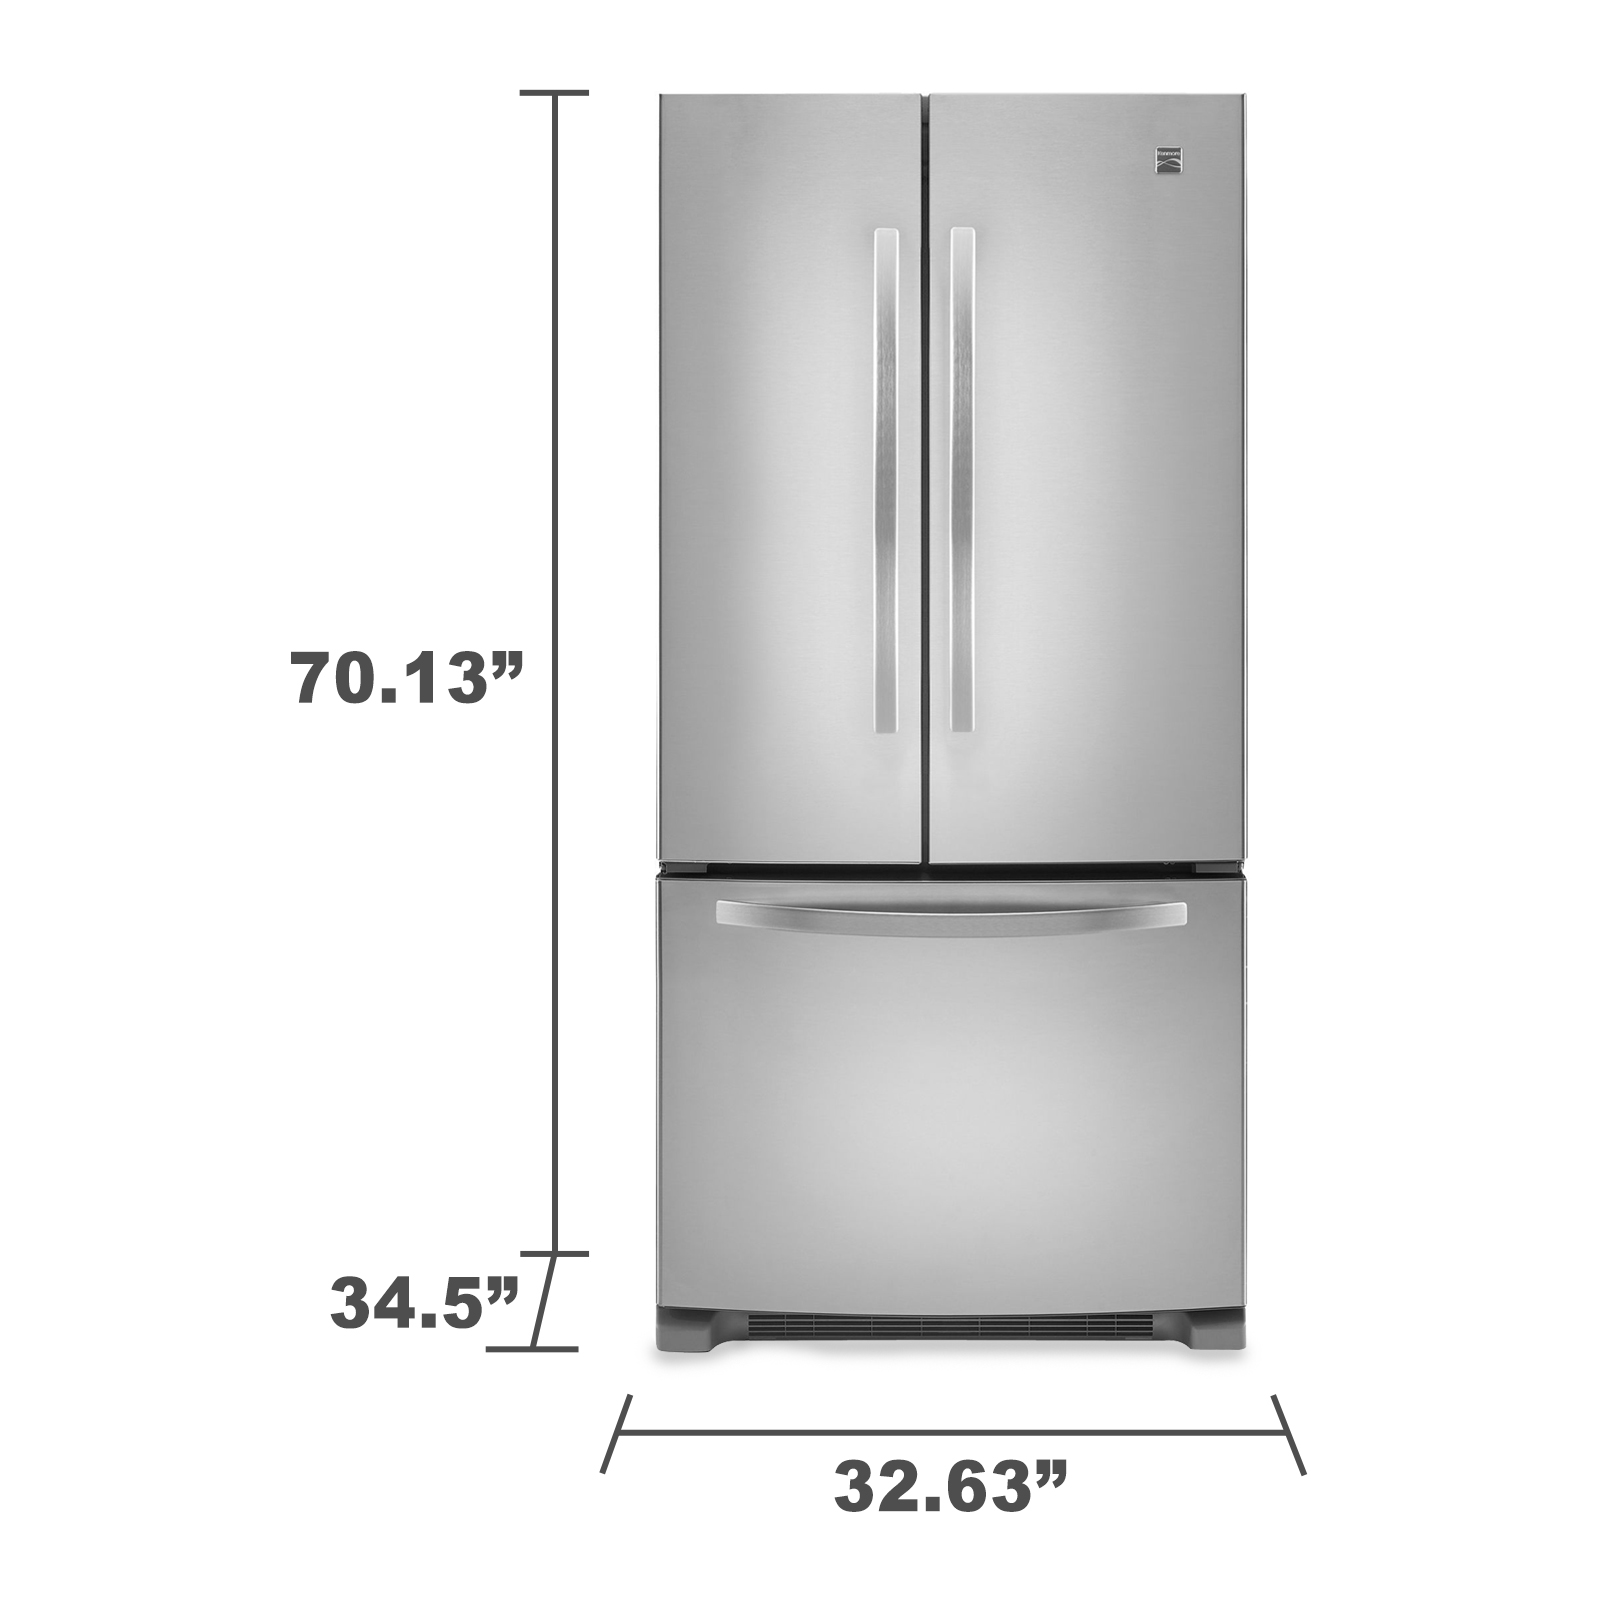 Kenmore 72003 22.1 cu. ft. French Door Bottom-Freezer Refrigerator w/Internal Dispenser - Stainless Steel